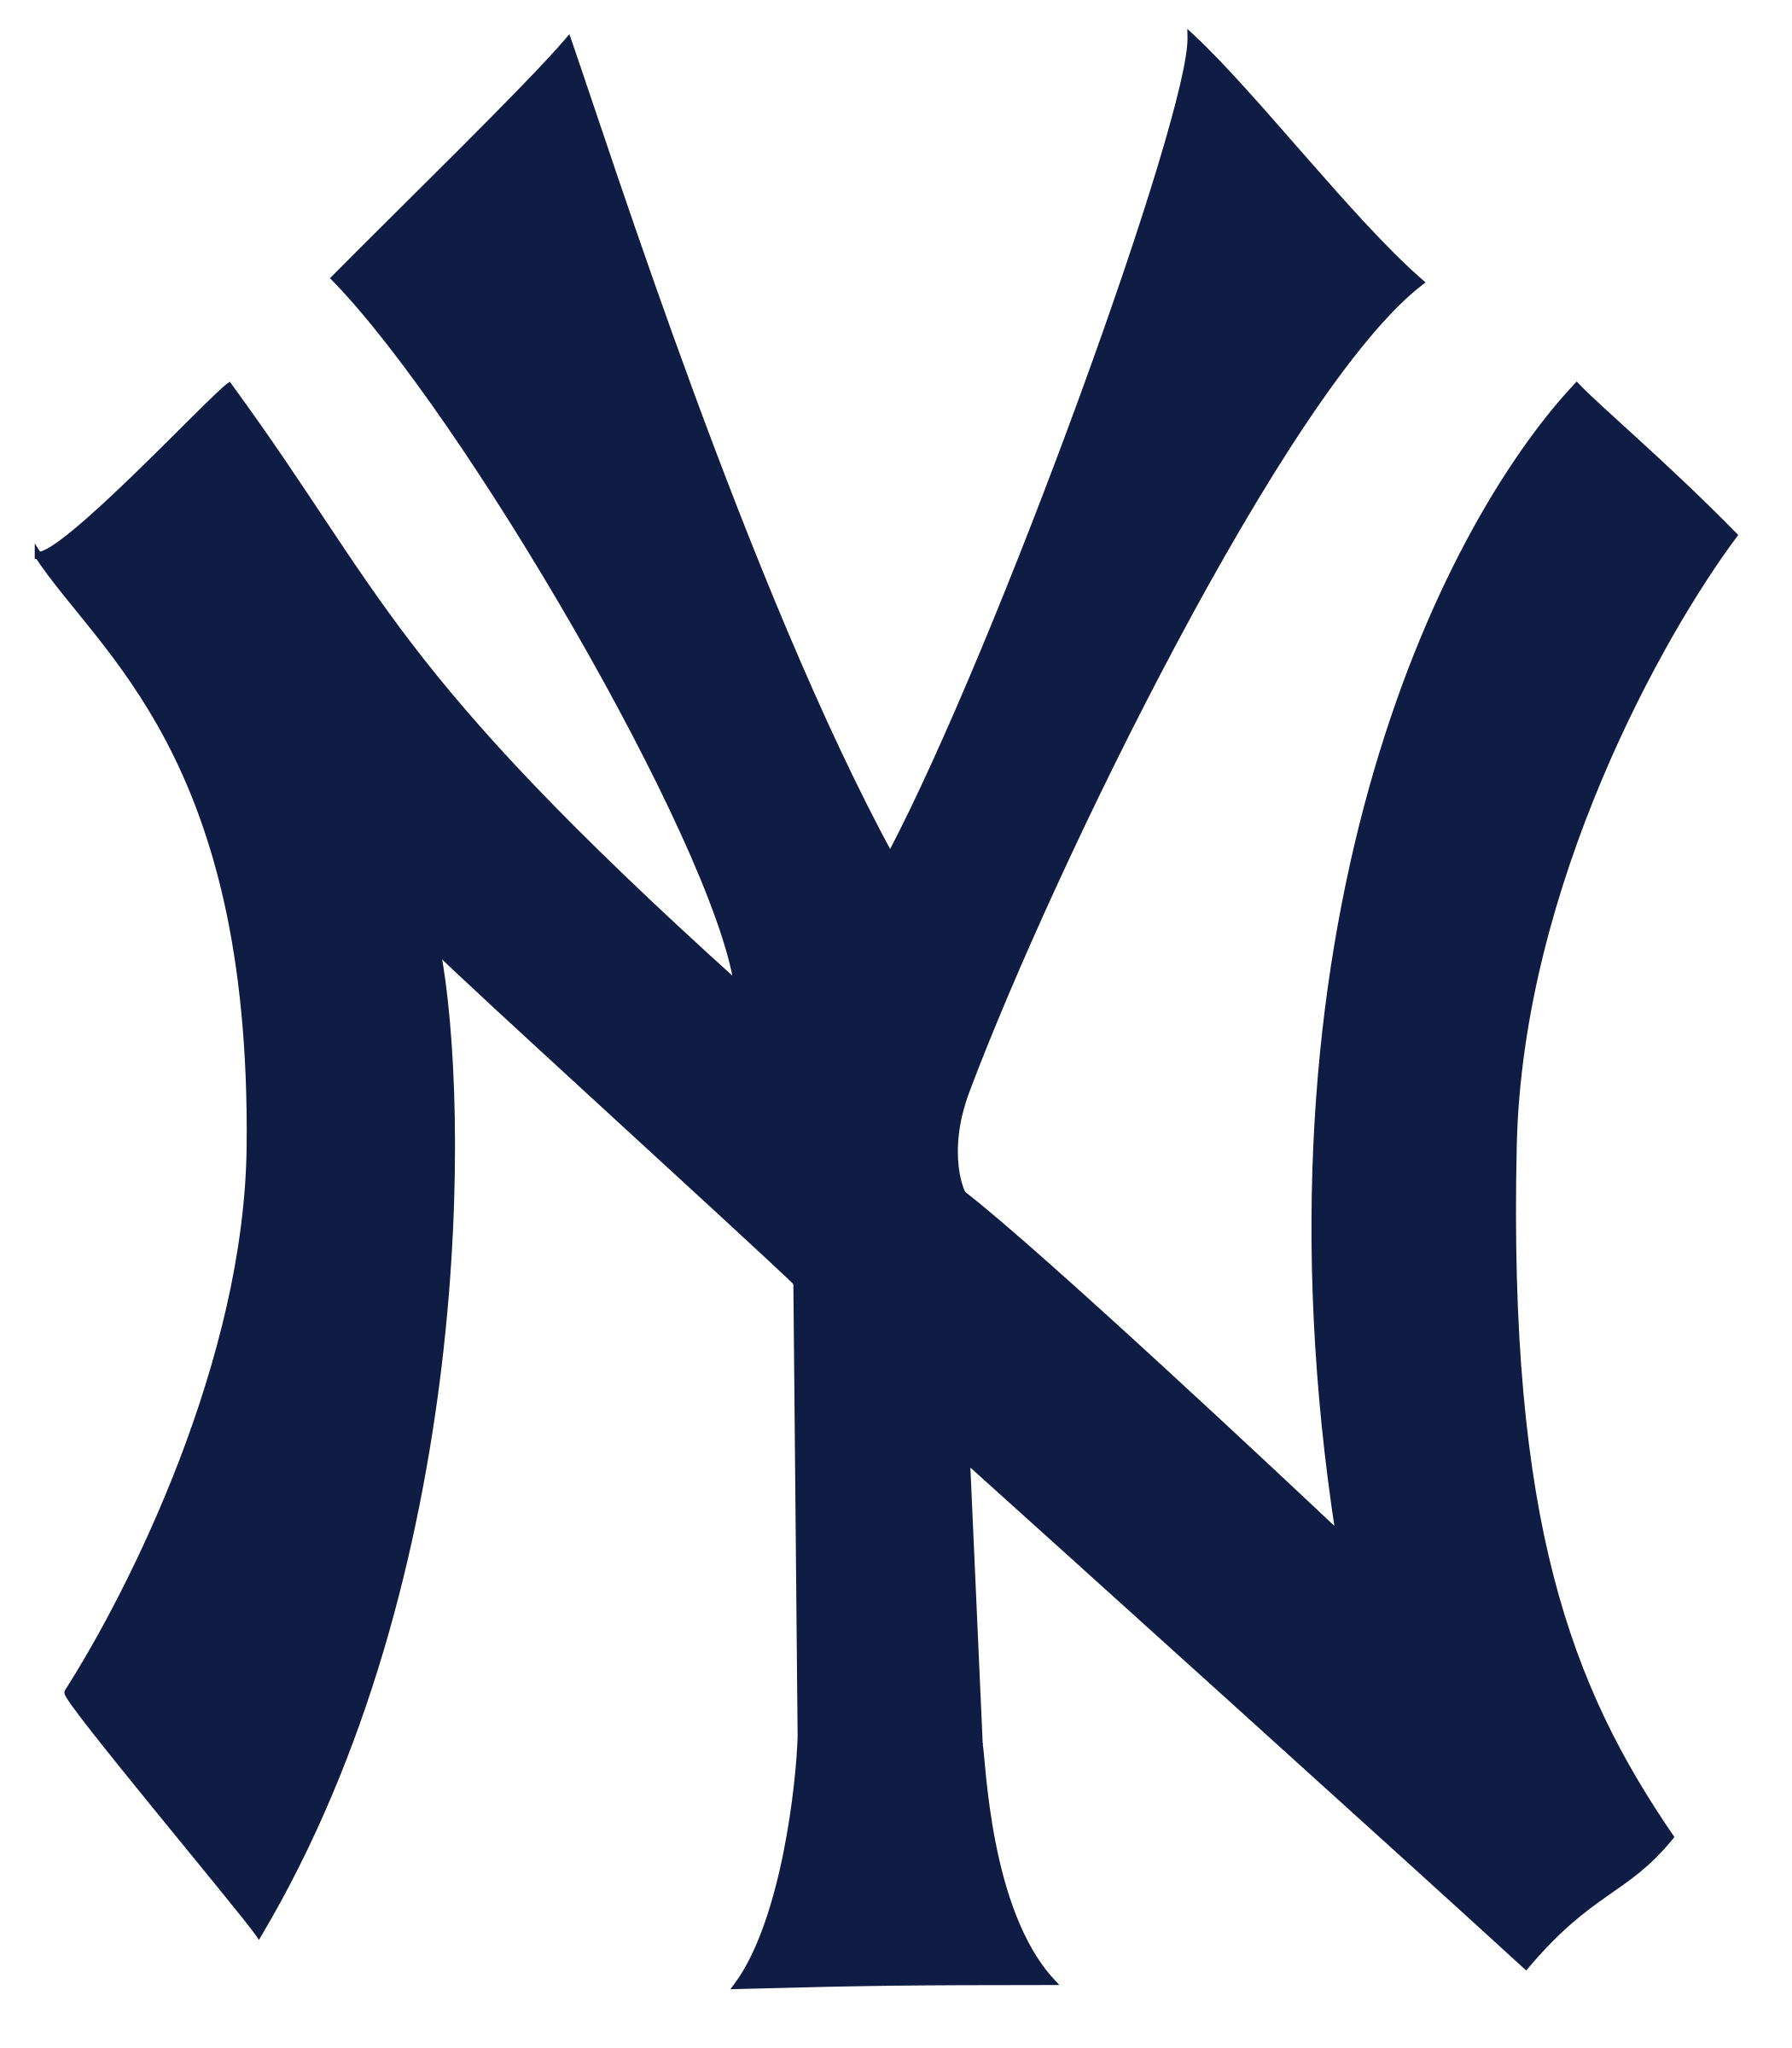 new york yankees logos download rh logos download com